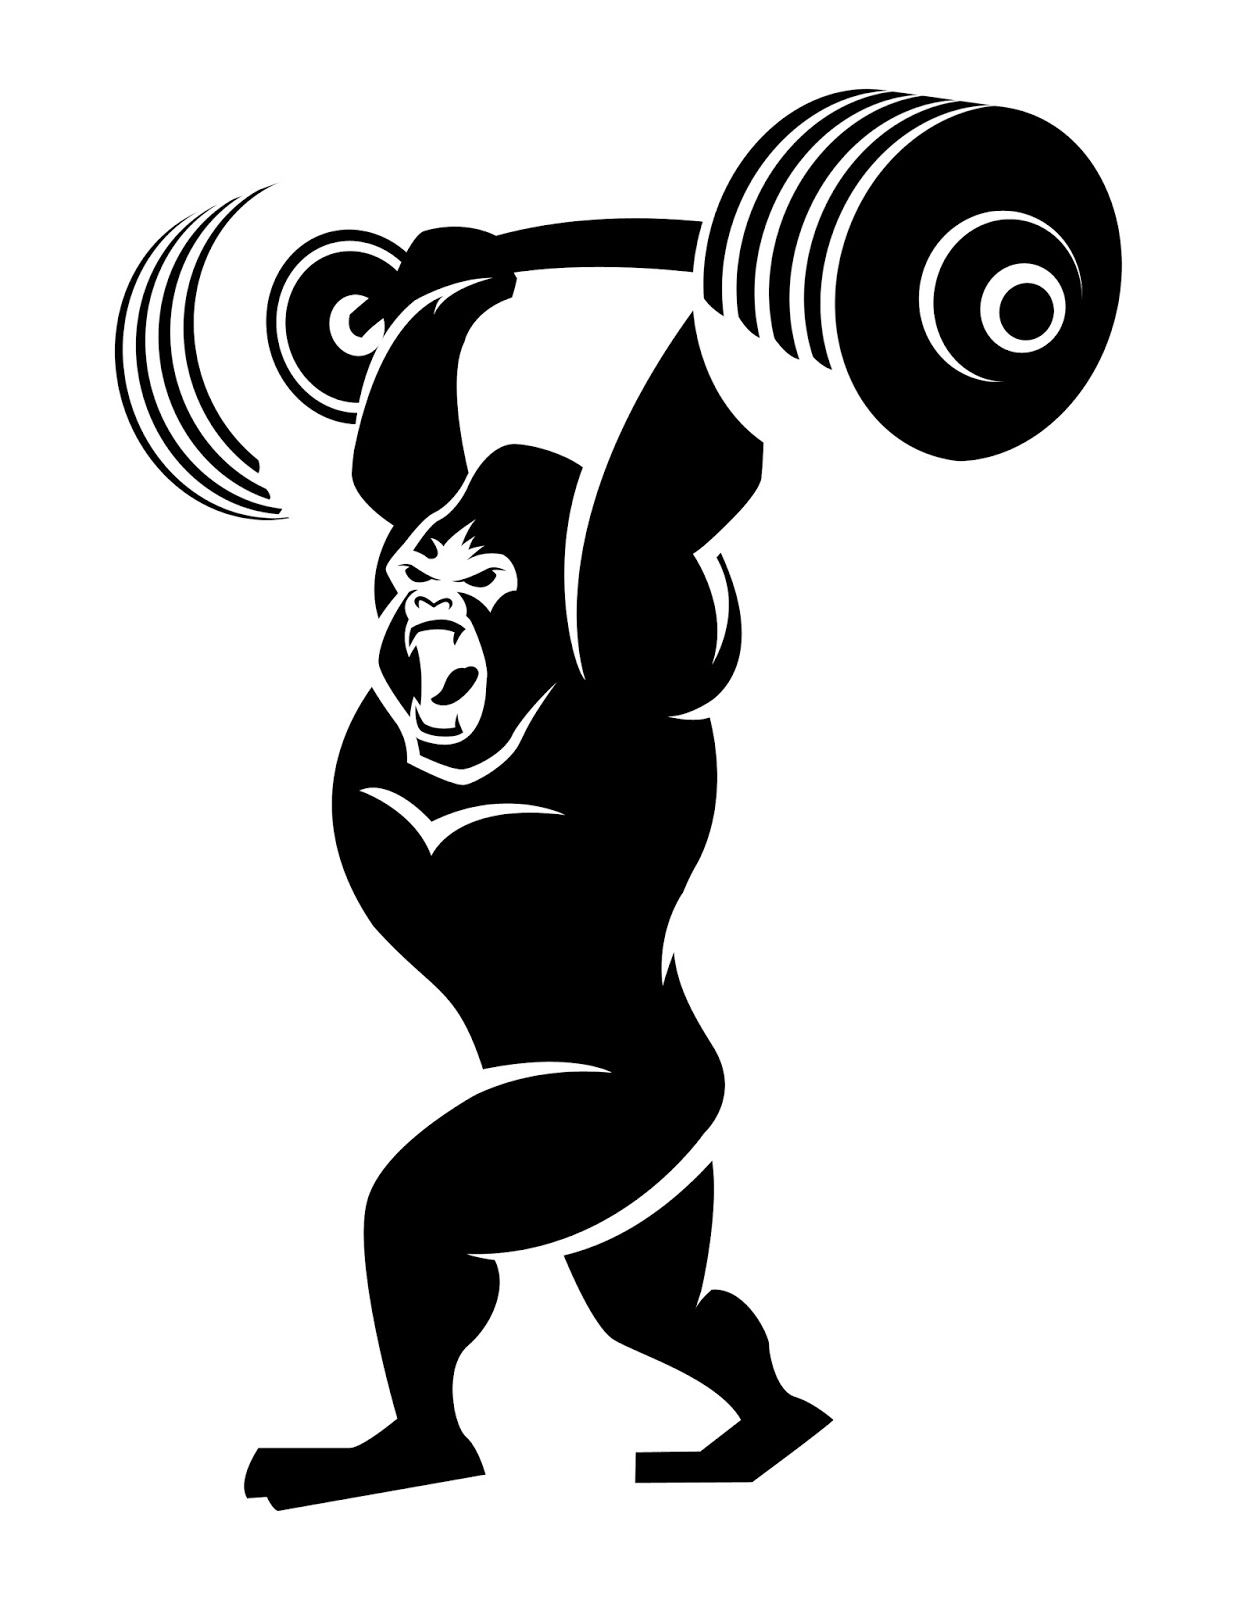 Animal lifting weight clipart black and white jpg transparent download Gorilla Weight Lifting Logo - Build Muscle And Burn Fat At The Same ... jpg transparent download